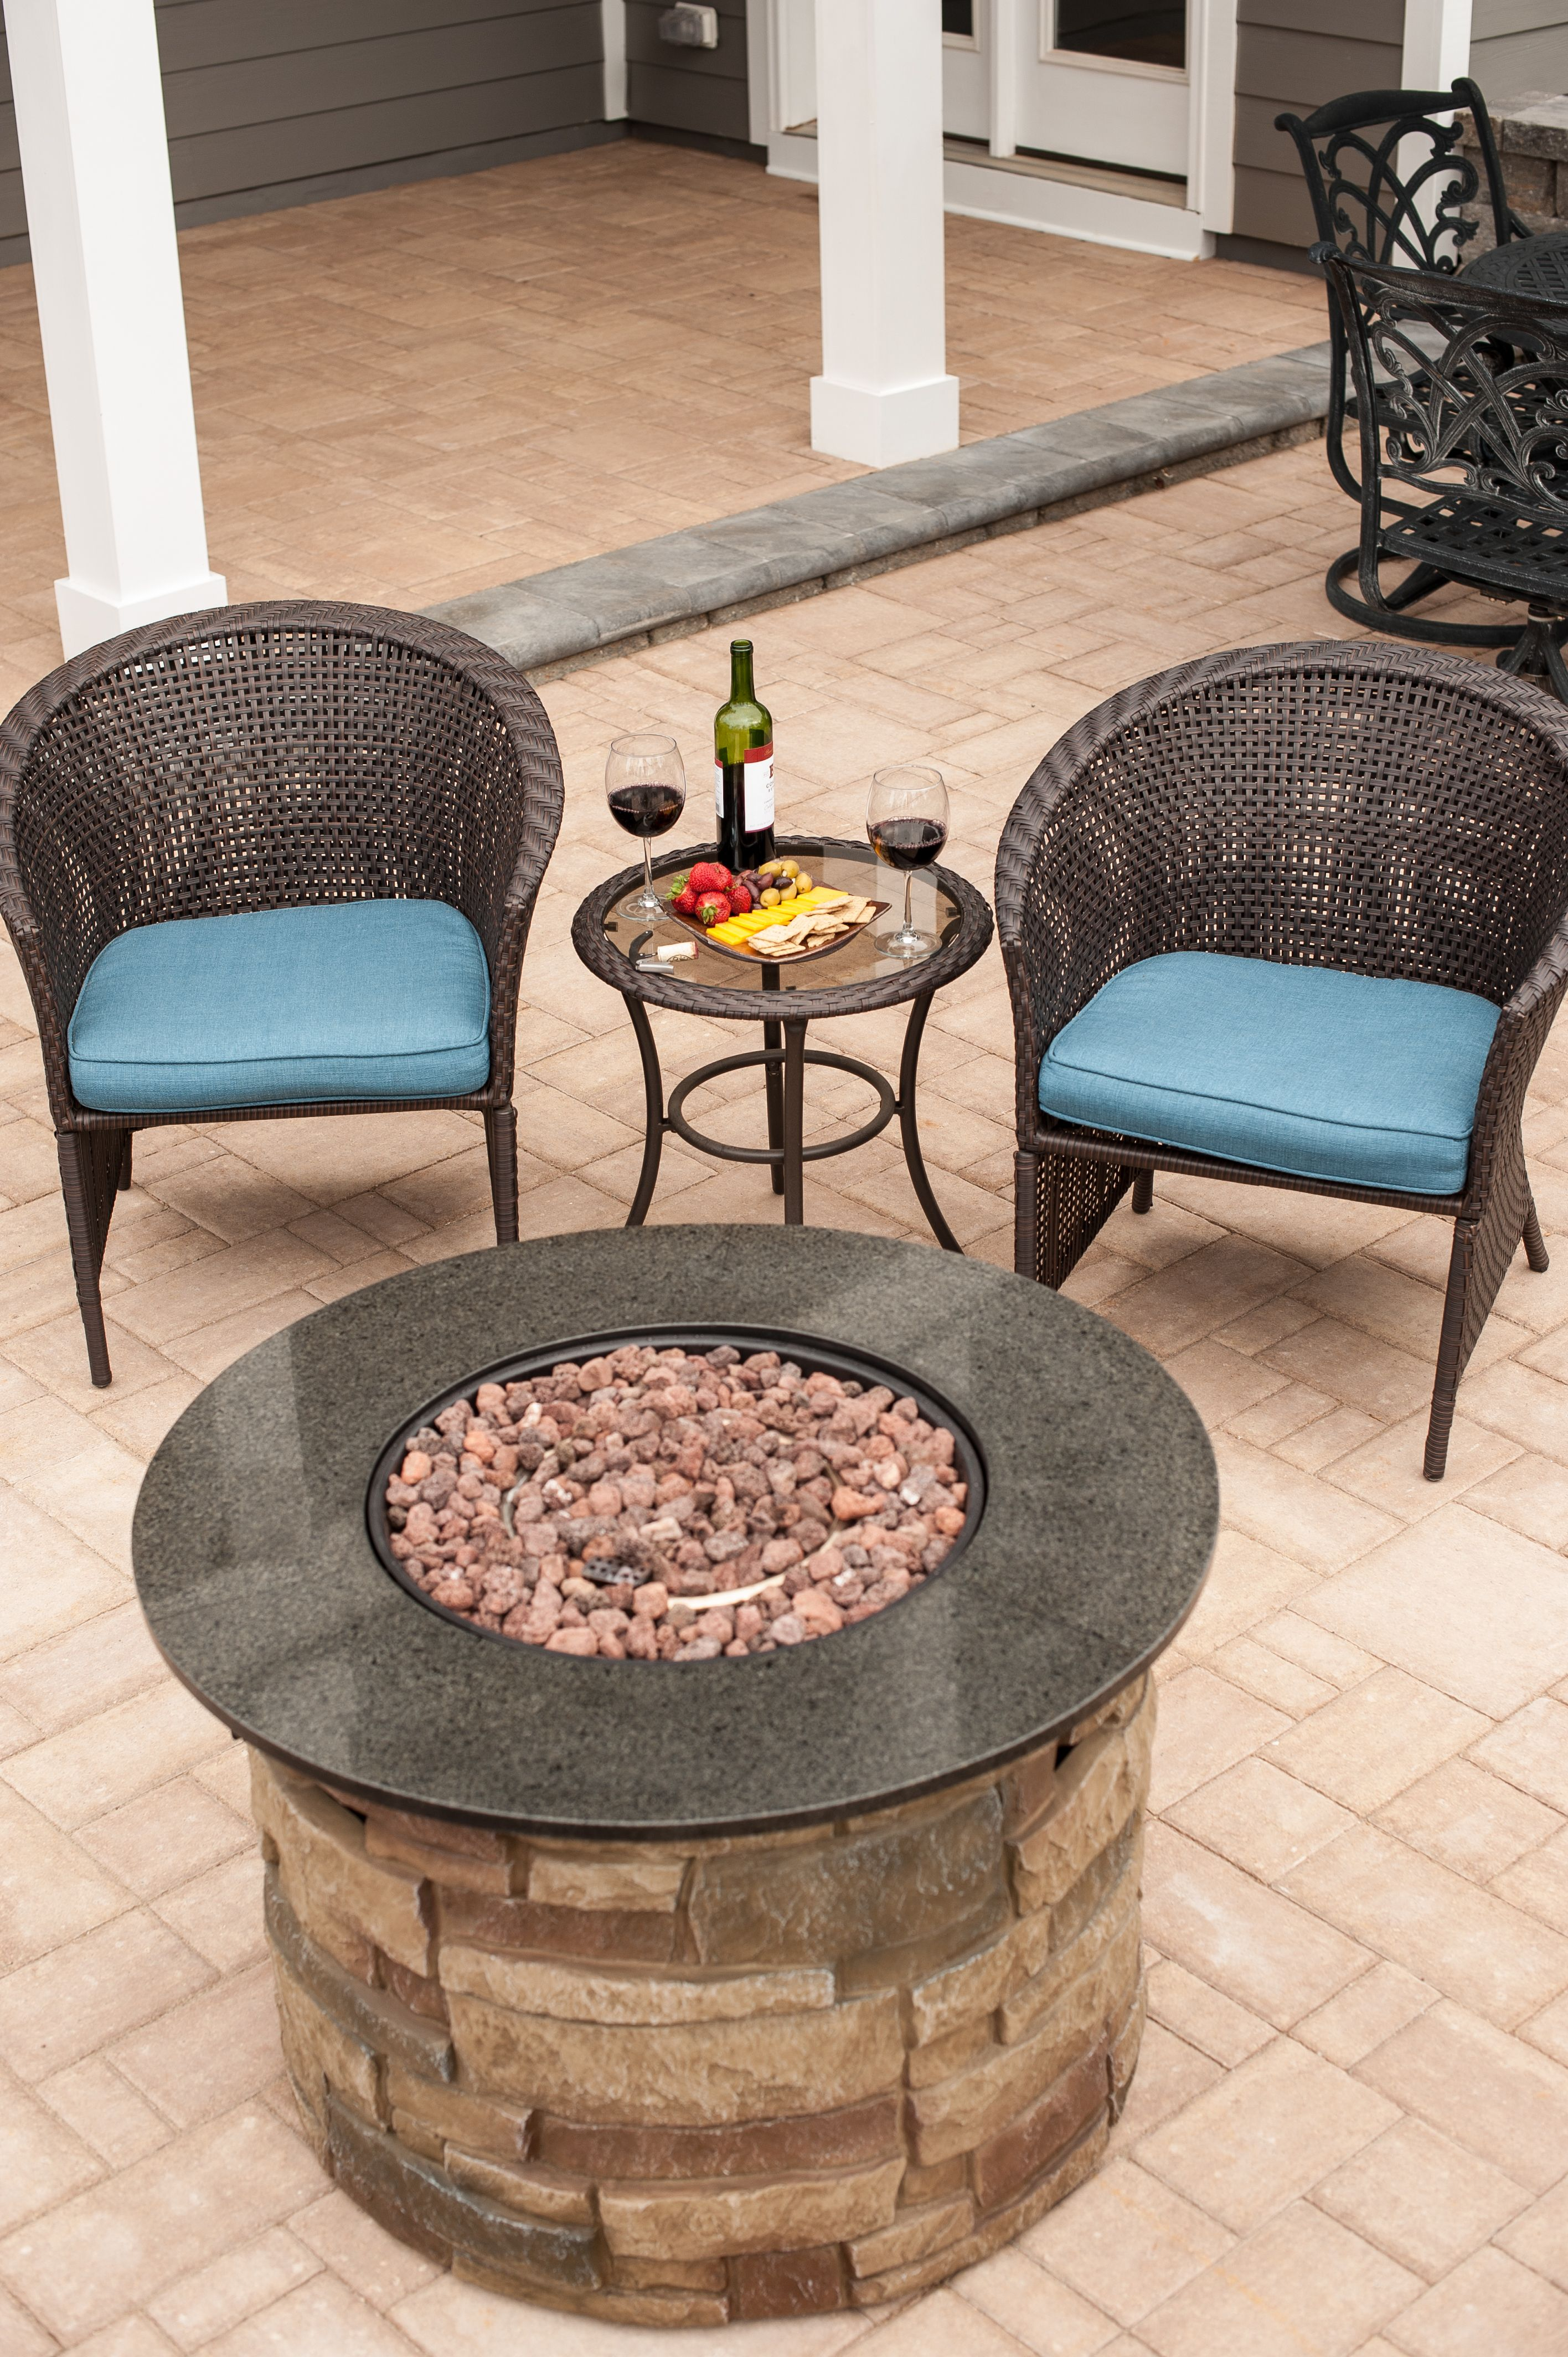 4df5e5e5262ceaa2279e06c9cf4faf44 Top Result 50 Awesome Cost Of Outdoor Fireplace Picture 2018 Zat3